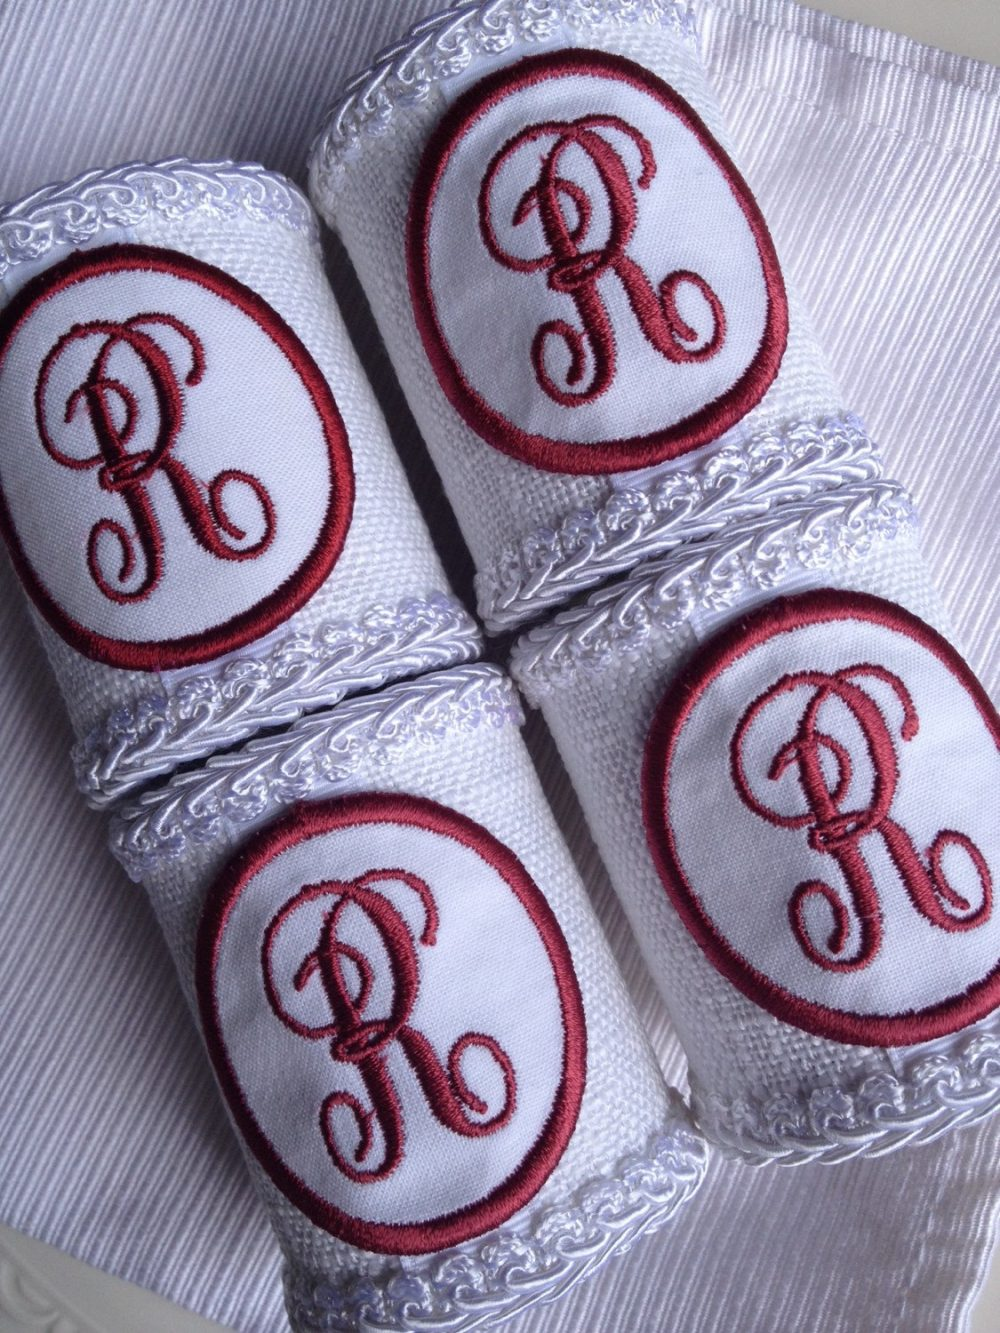 R Monogrammed Napkin Rings Personalized Handcrafted Letter Initial Monogram Hand Crafted Red White - #77